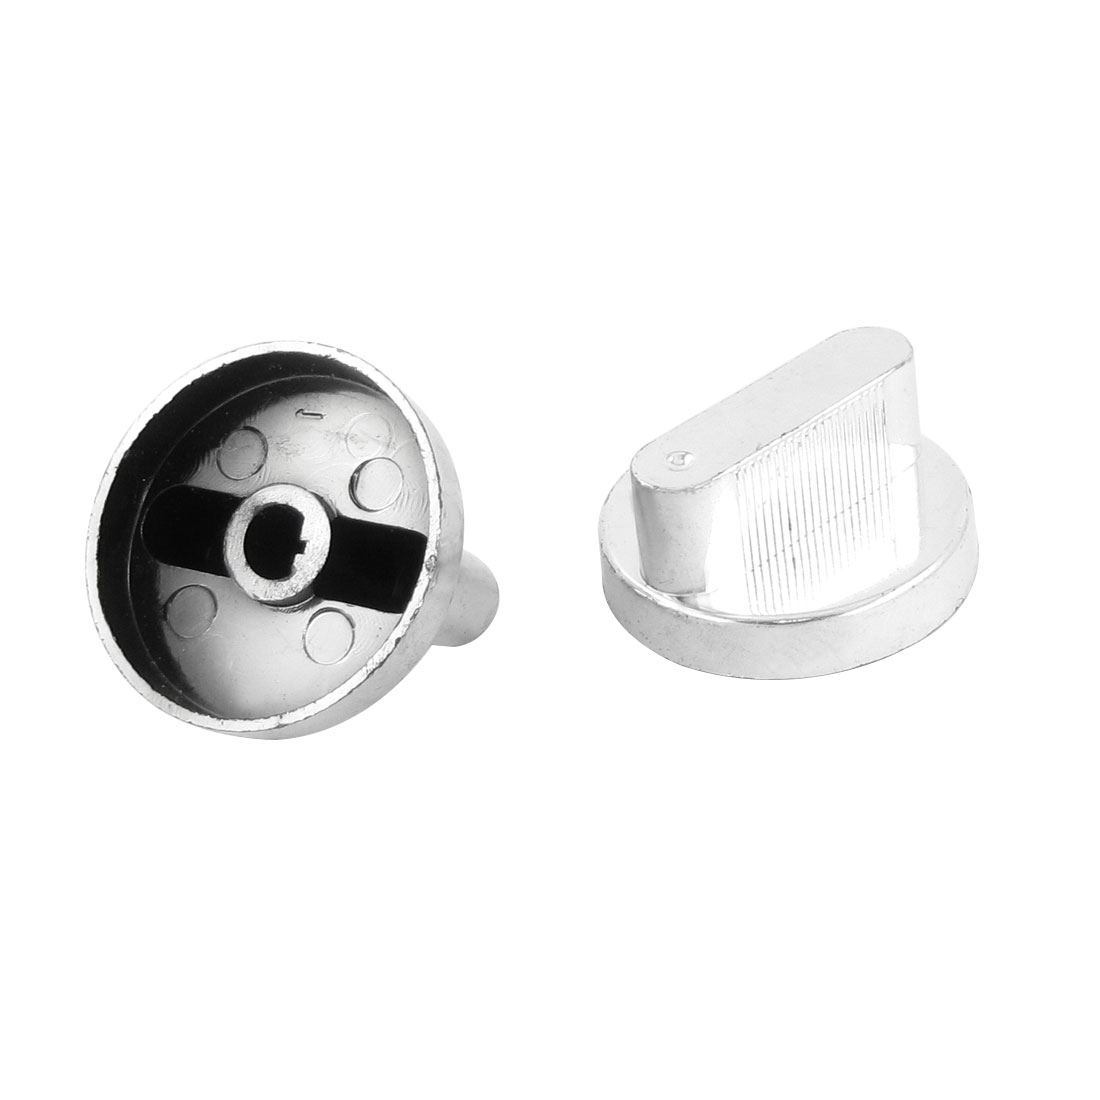 2pcs Replacement Silver Tone Plastic Gas Stove Oven Range Knob 41mm Dia